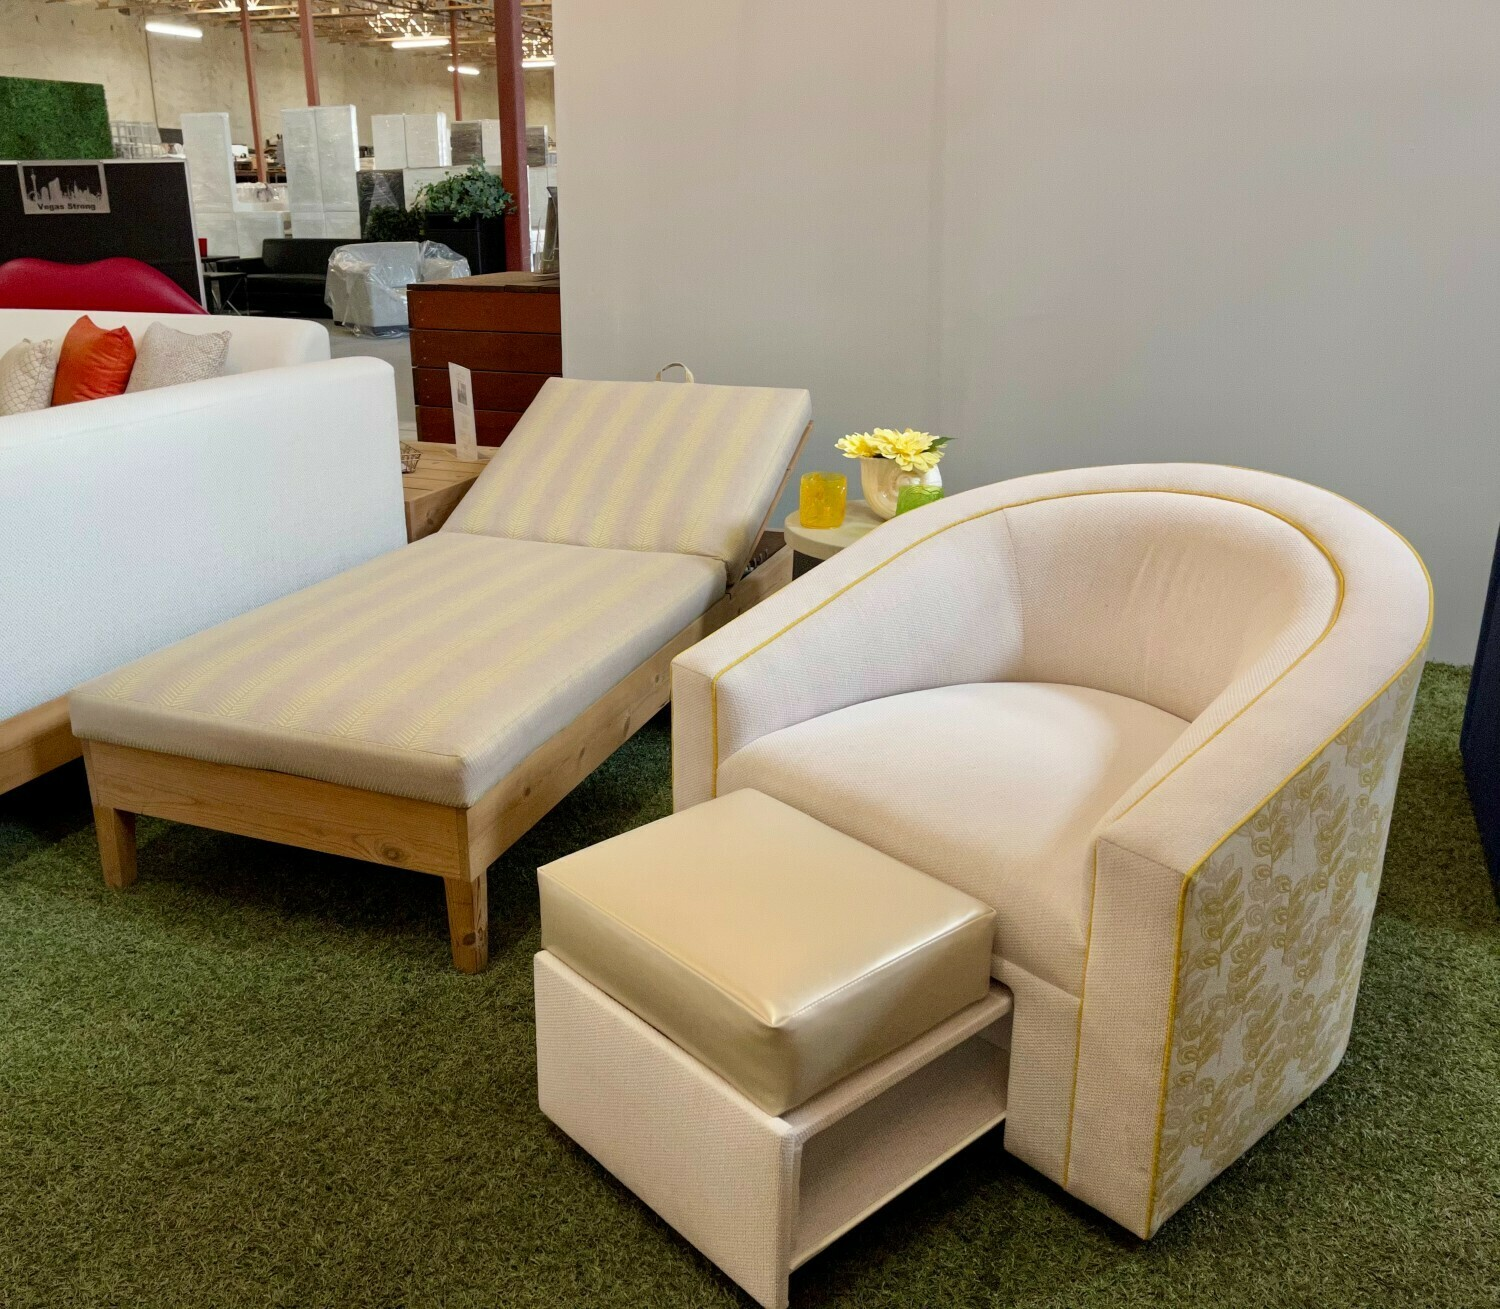 Wood Base Lounger, Swivel Chair w/Footrest & Concrete Accent Table Set-Samples